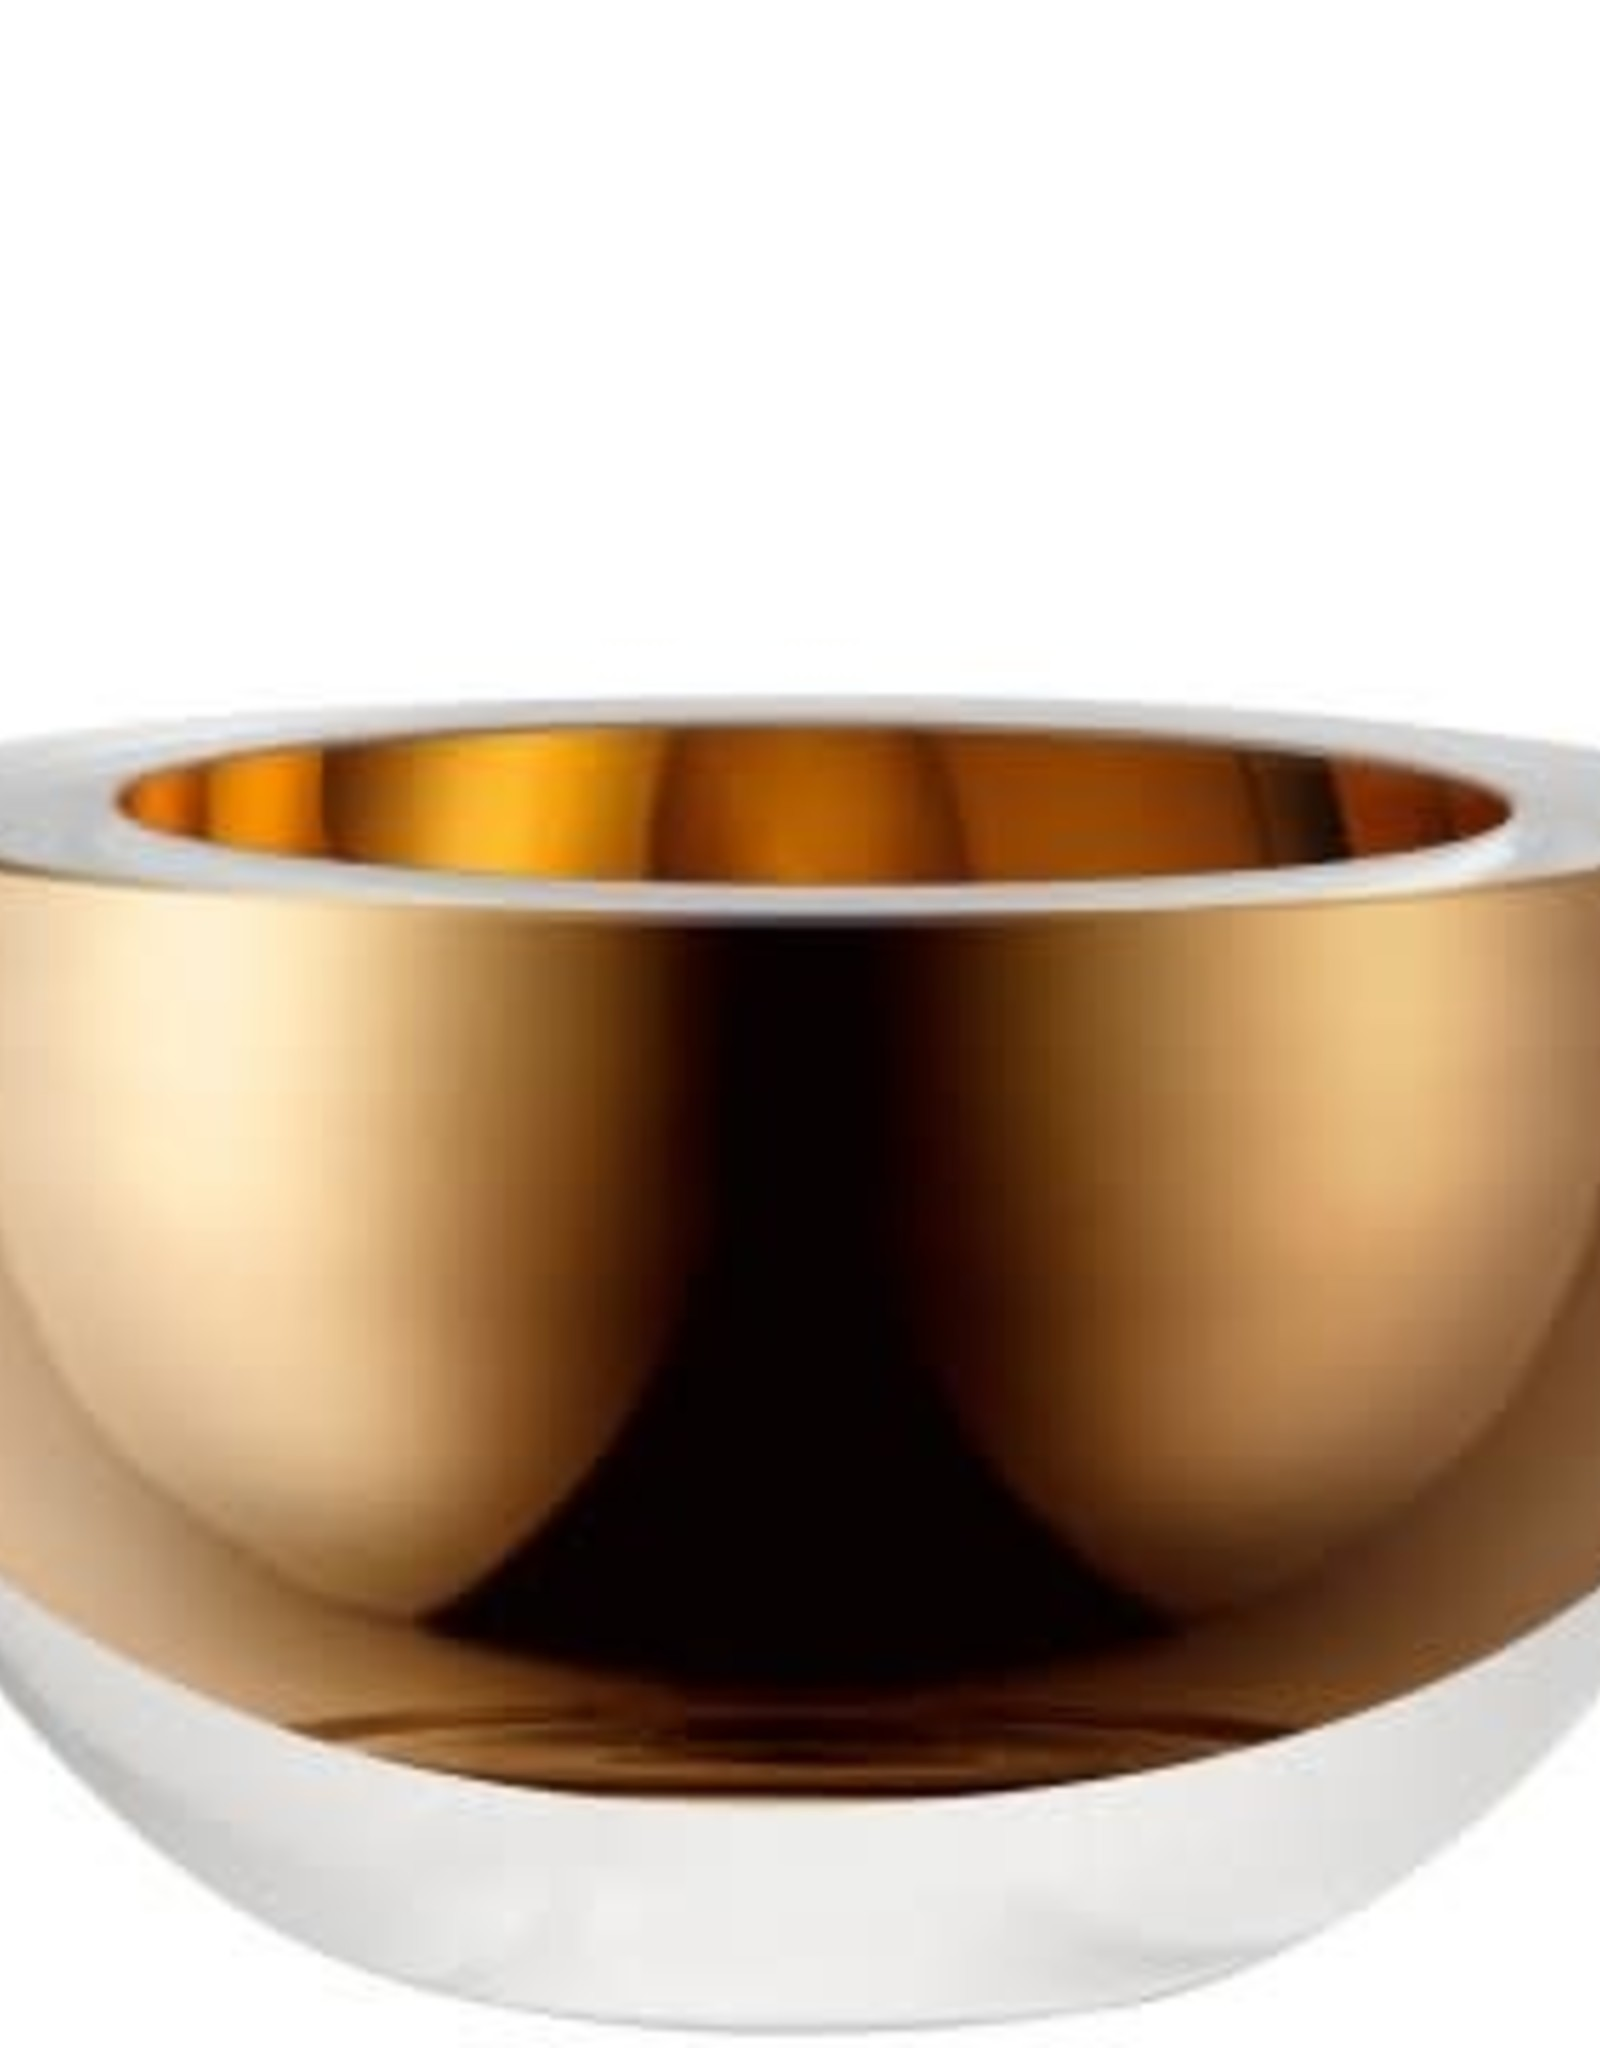 Host Bowl 3.75in GOLD